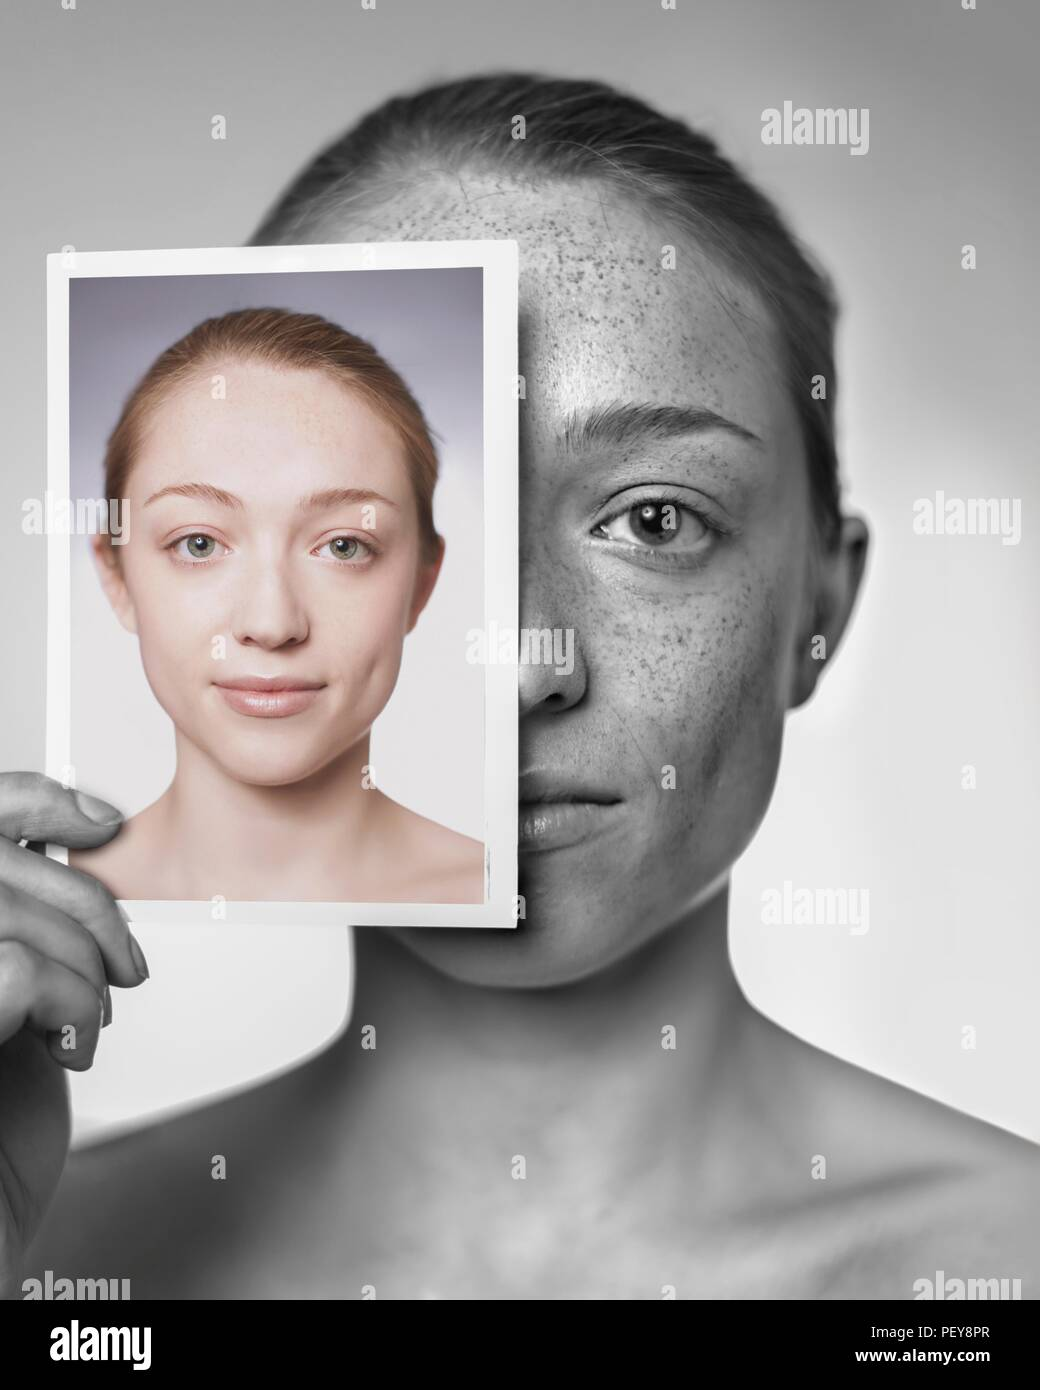 Sun damage. Woman showing the damage sun exposure has done to her skin. - Stock Image